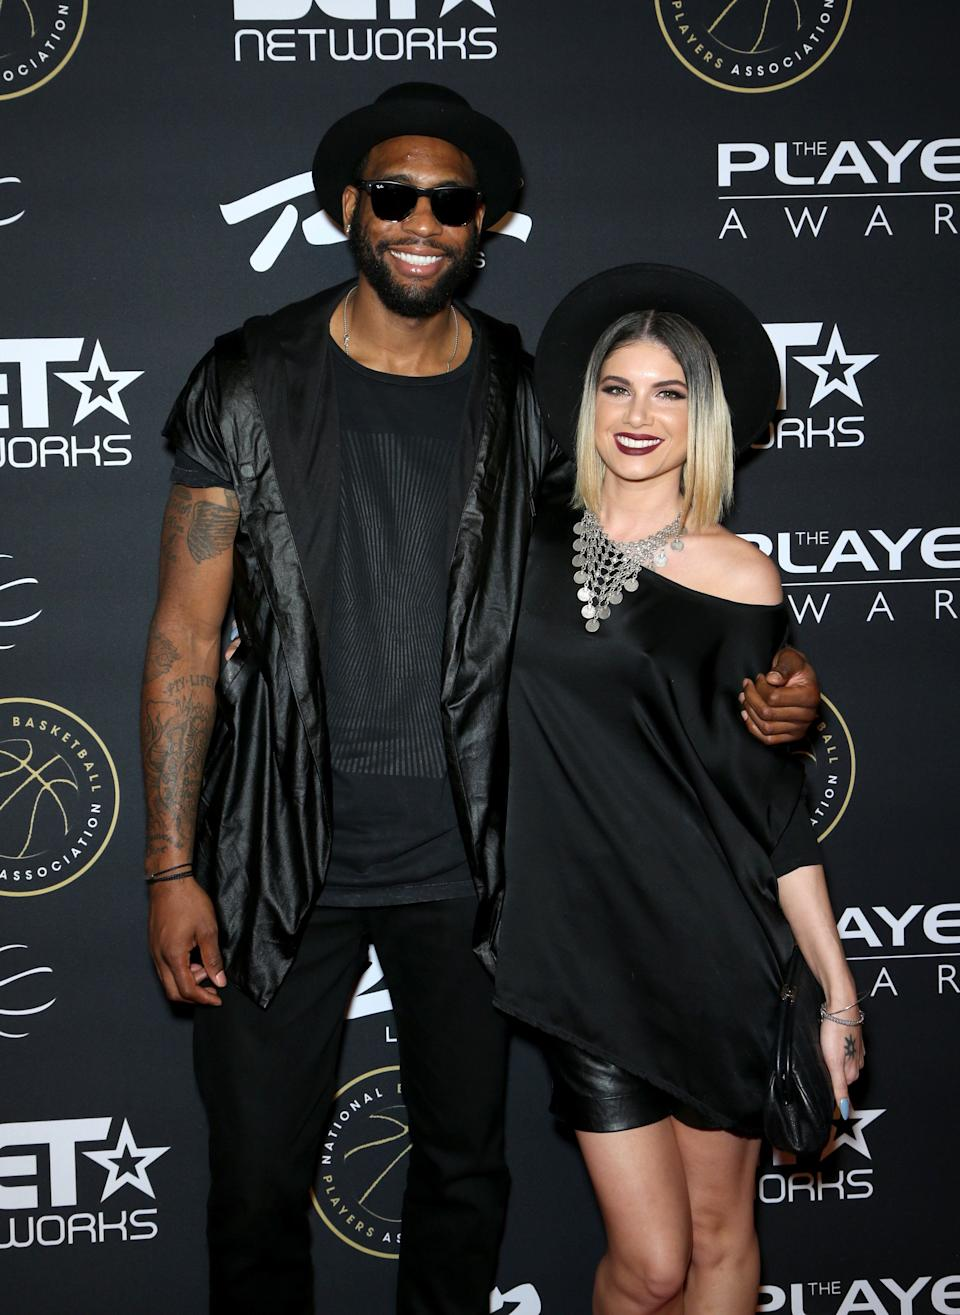 """<strong>Rasual Butler andLeah LaBelle</strong><br /><strong>Ex-NBA Player (b. 1979) and 'American Idol' star(b. 1977)</strong><br /><br />Leah, who found fame when she was a finalist on the 2004 series of 'American Idol' died with her former professional basketball player husband Rasual <a href=""""http://www.huffingtonpost.co.uk/entry/leah-labelle-dead-dies-american-idol-car-crash-husband-rasual-butler_uk_5a72e92fe4b0bf6e6e21f29"""">when their car crashed in LA.</a>"""